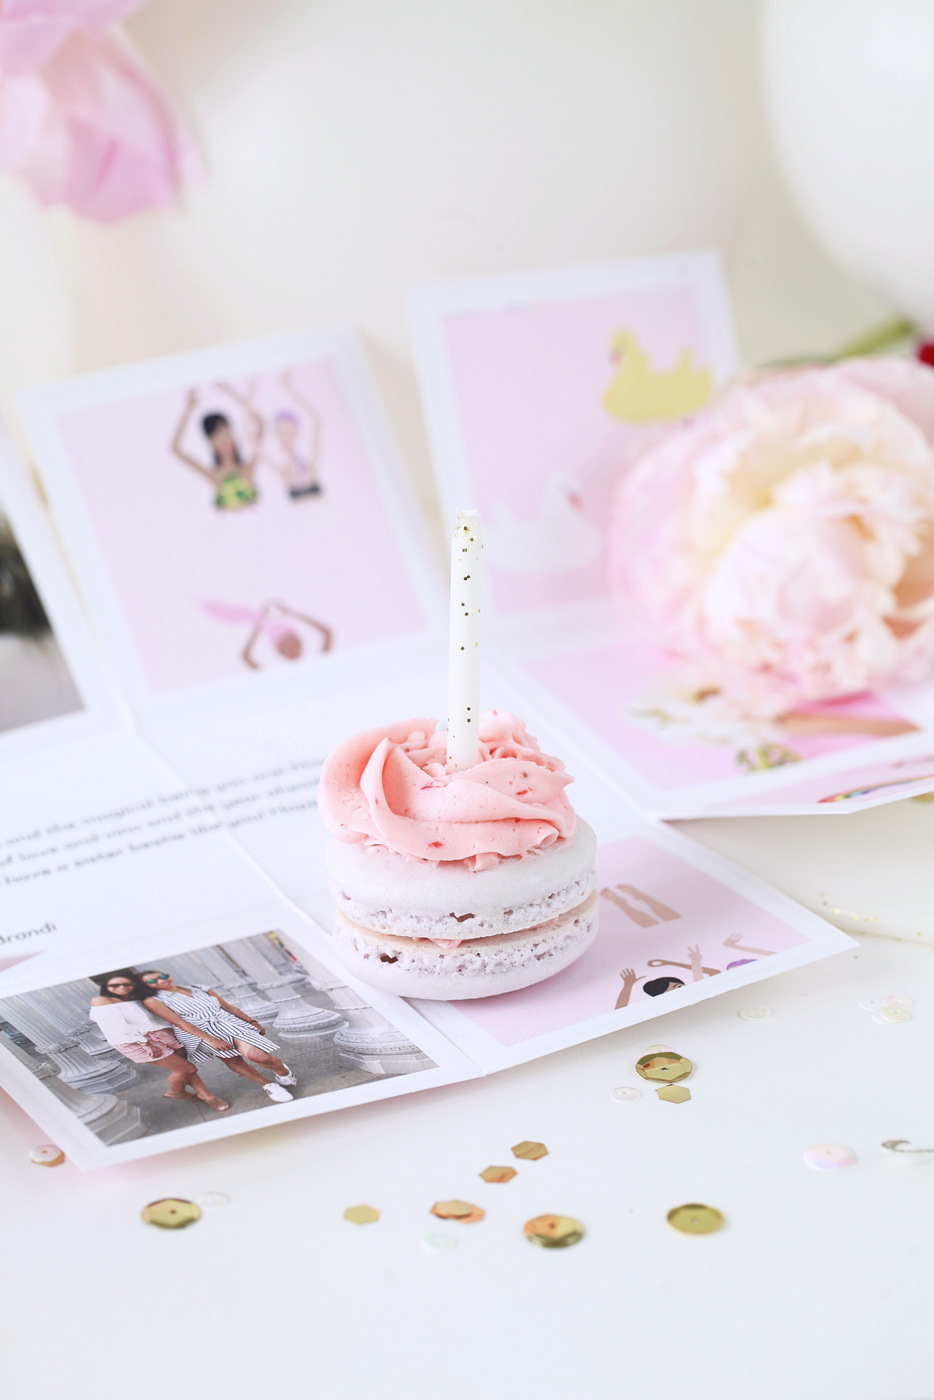 Greetabl-Cool Gifts-Gift Ideas-Birthday Gifts